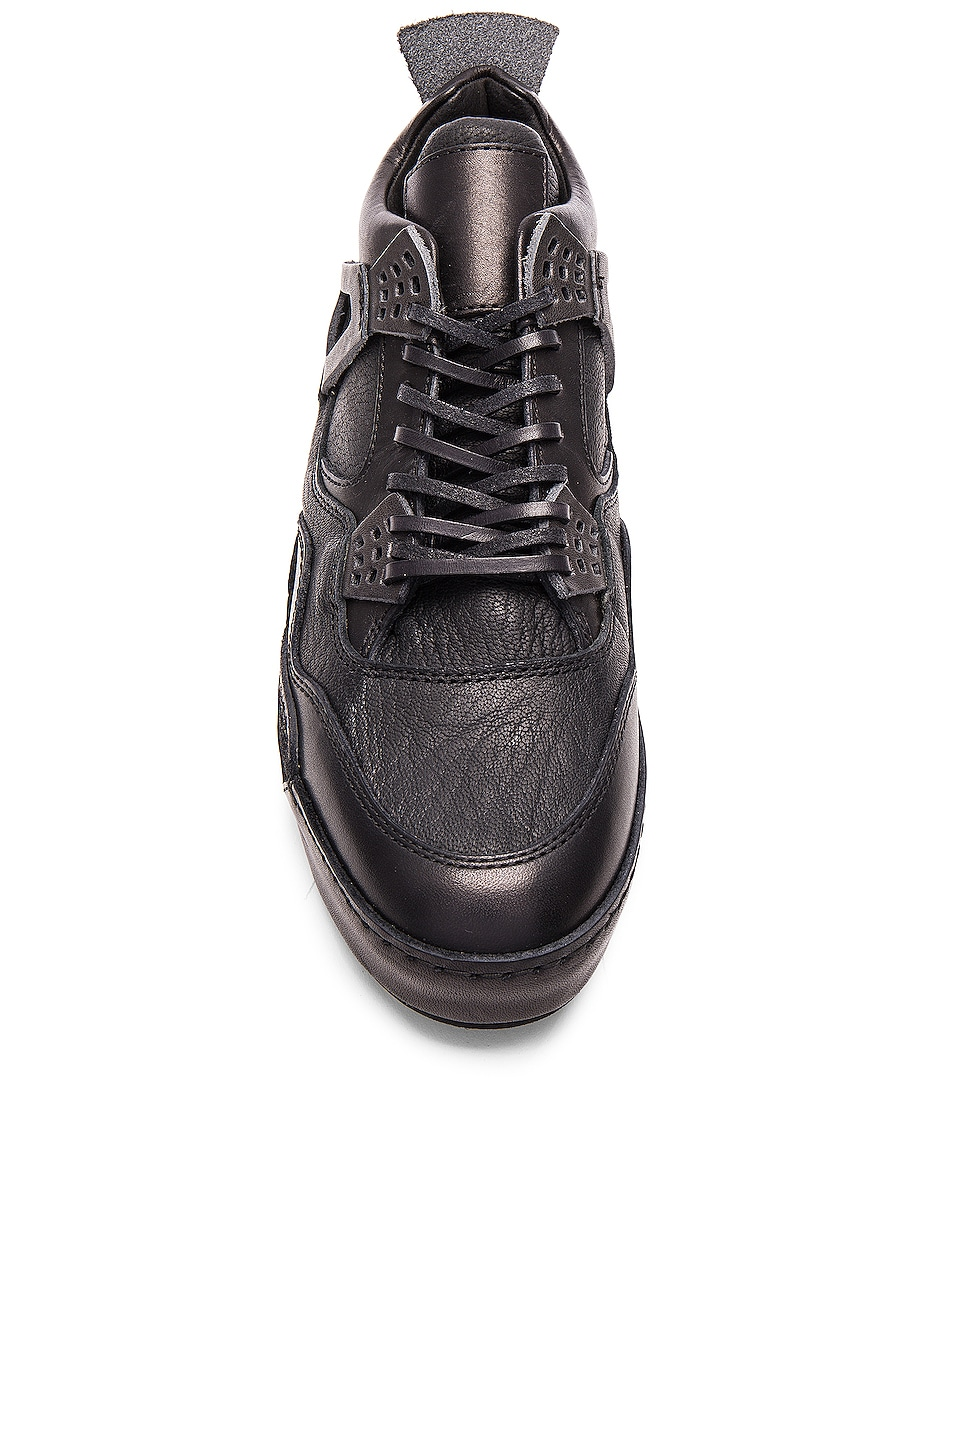 Image 4 of Hender Scheme Manual Industrial Product 10 in Black